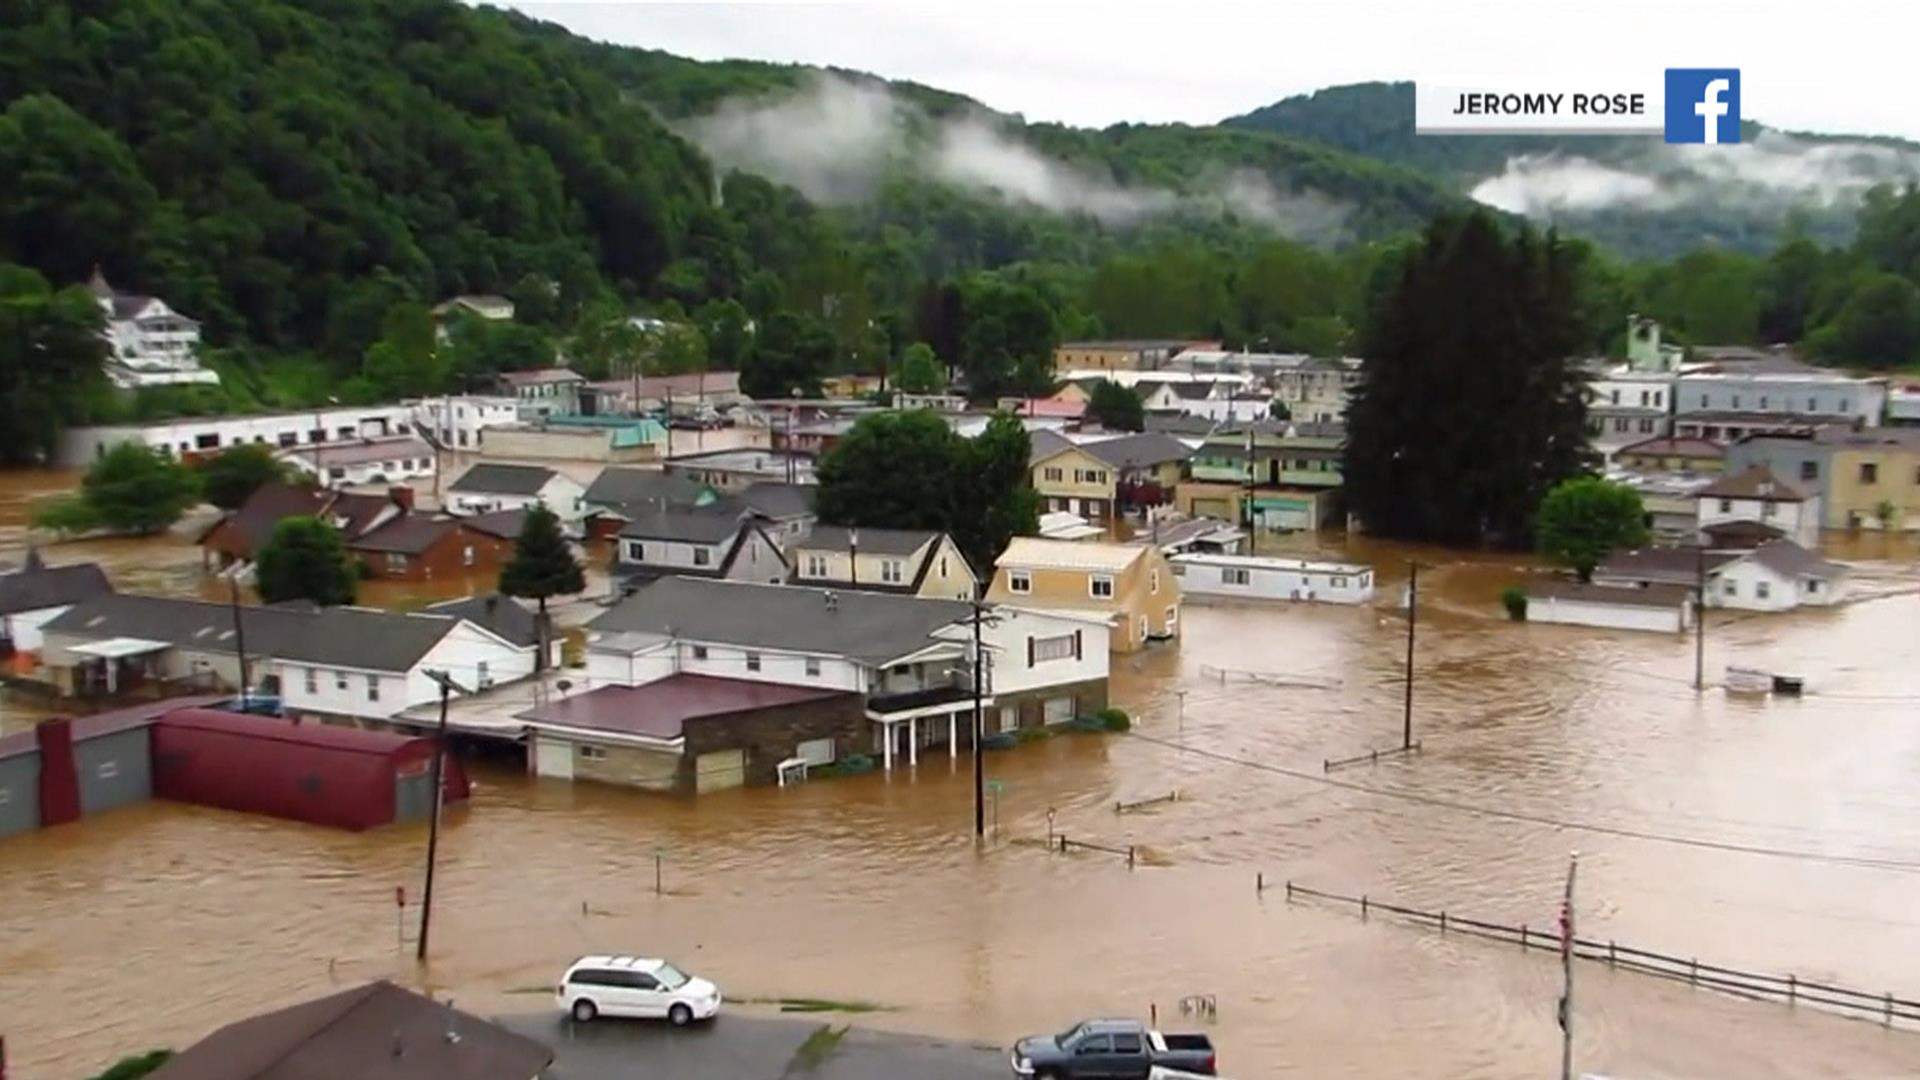 At least 4 dead in West Virginia after days of severe storms - NBC News